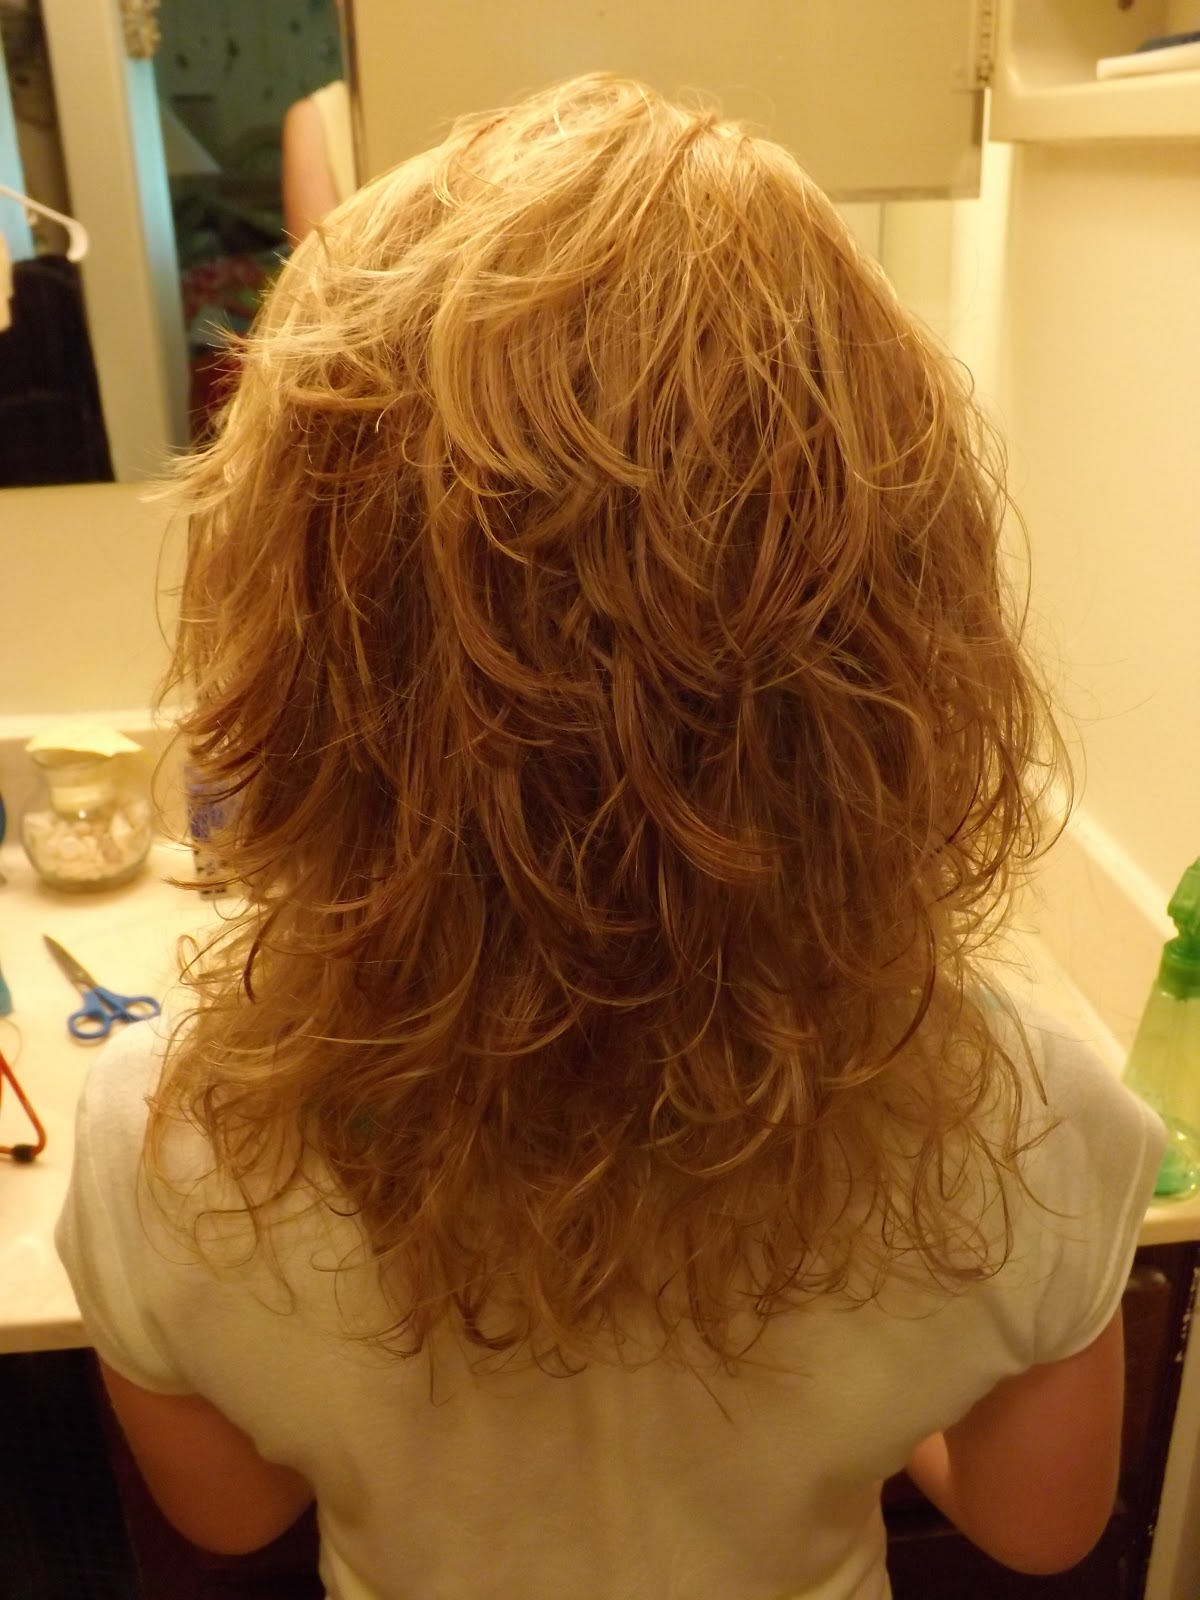 in her hair and dried it with my diffuser. Her hair looked beautiful